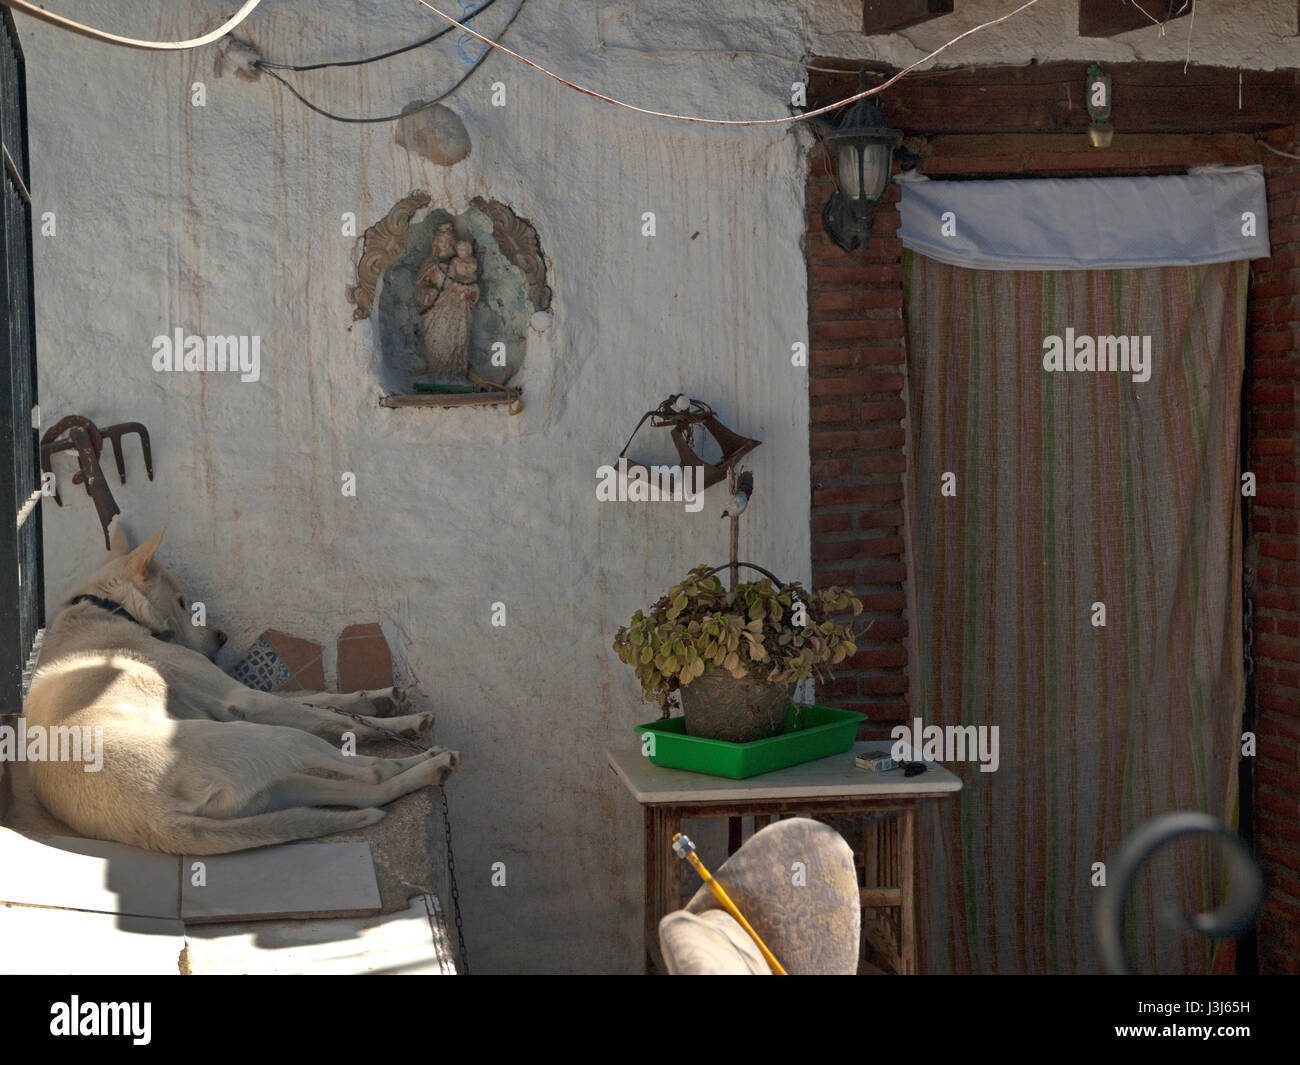 A dog sleeps in the front garden of a house on the Sacromonte Hill in Granada - Stock Image